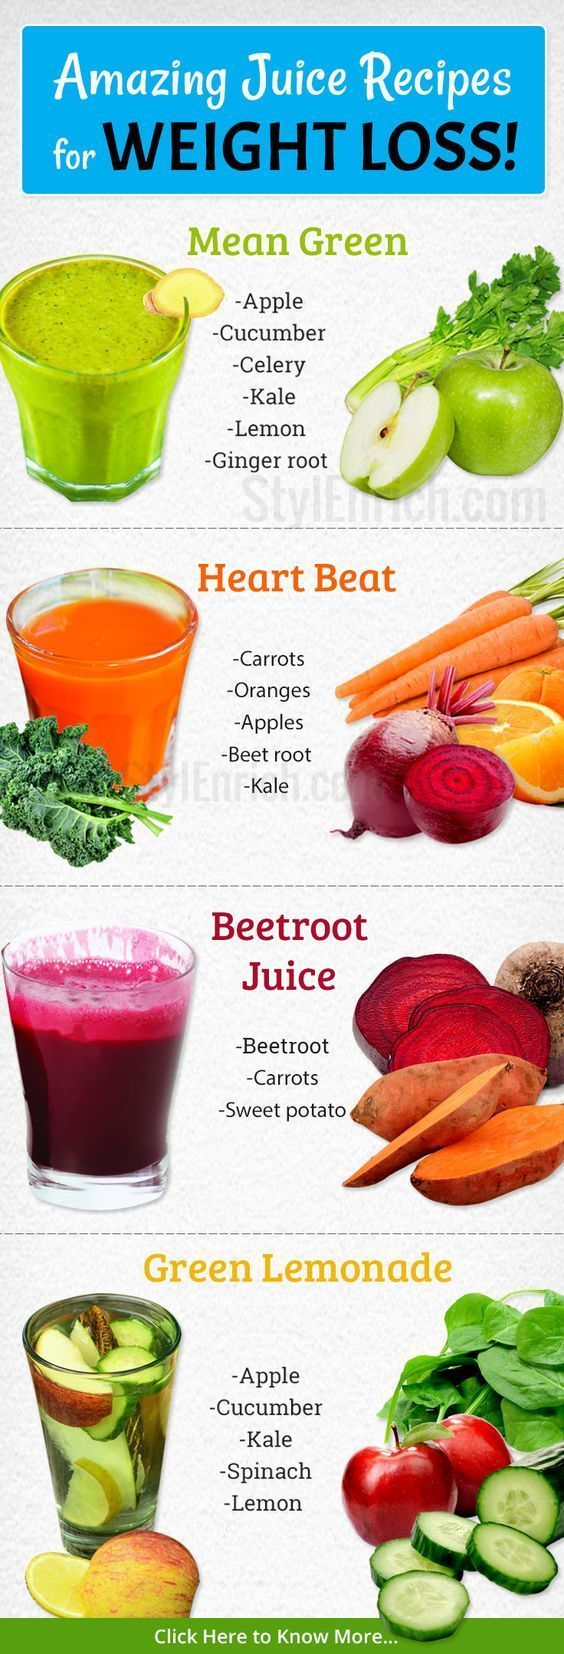 Juice recipe for weight loss - Healthy recipe   - Rezepte - #Healthy #Juice #loss #recipe #Rezepte #...